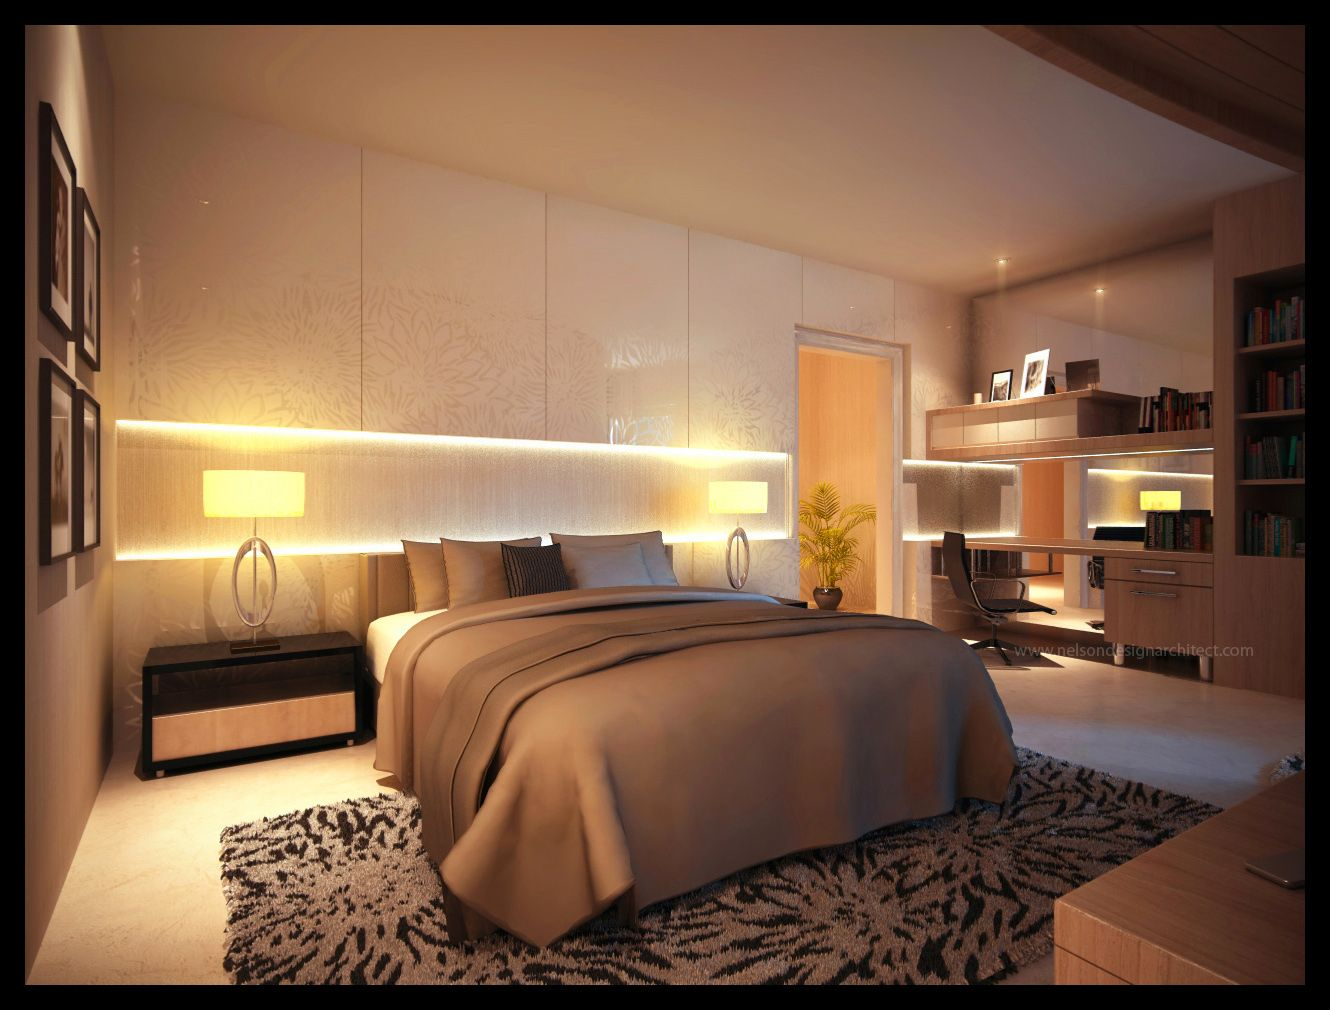 Beautiful bedroom interiors - Bedroom Interiors